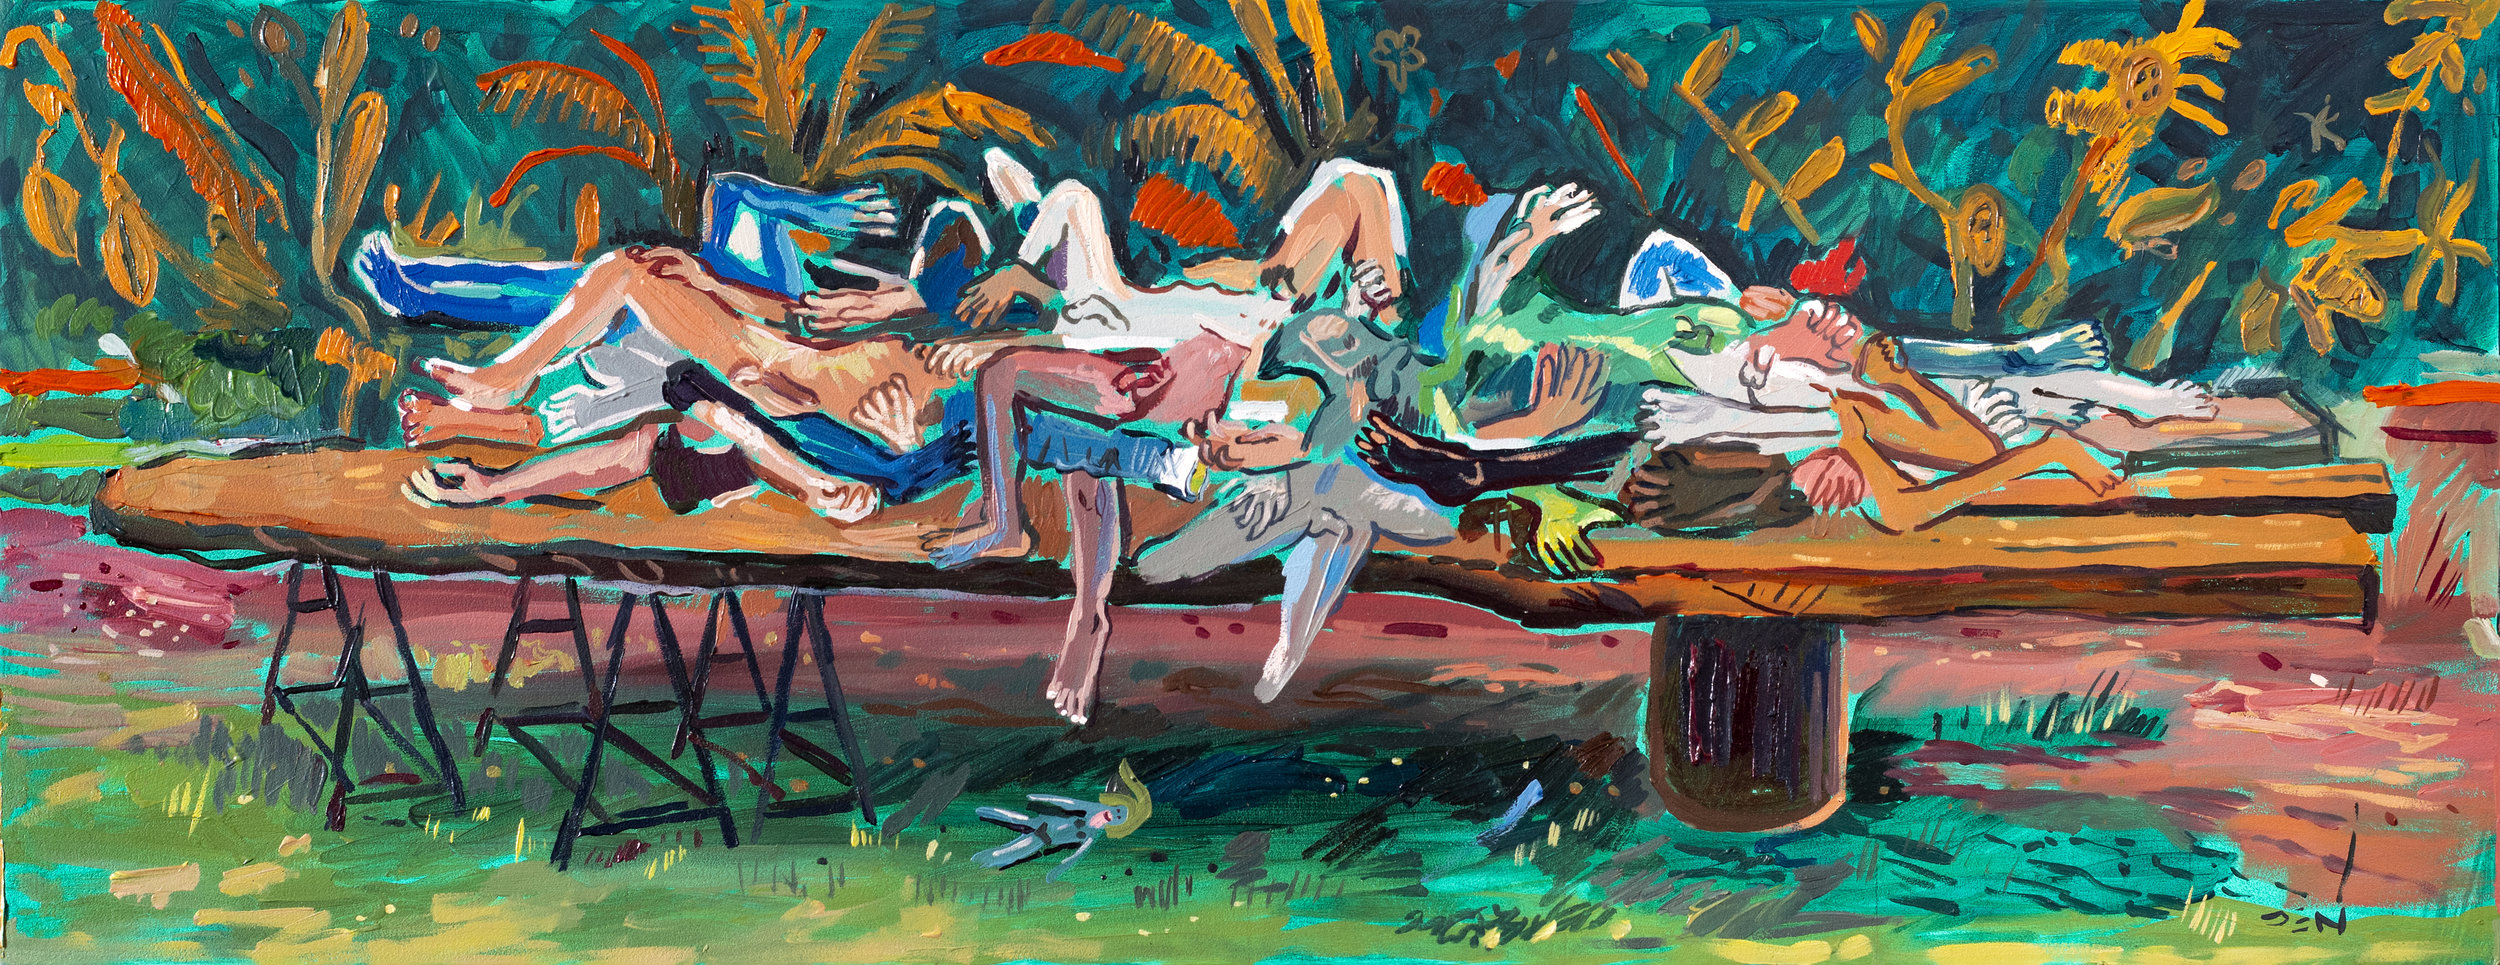 Still Life with Arms and Legs, 2019, Oil on Board, 80cm x 31cm